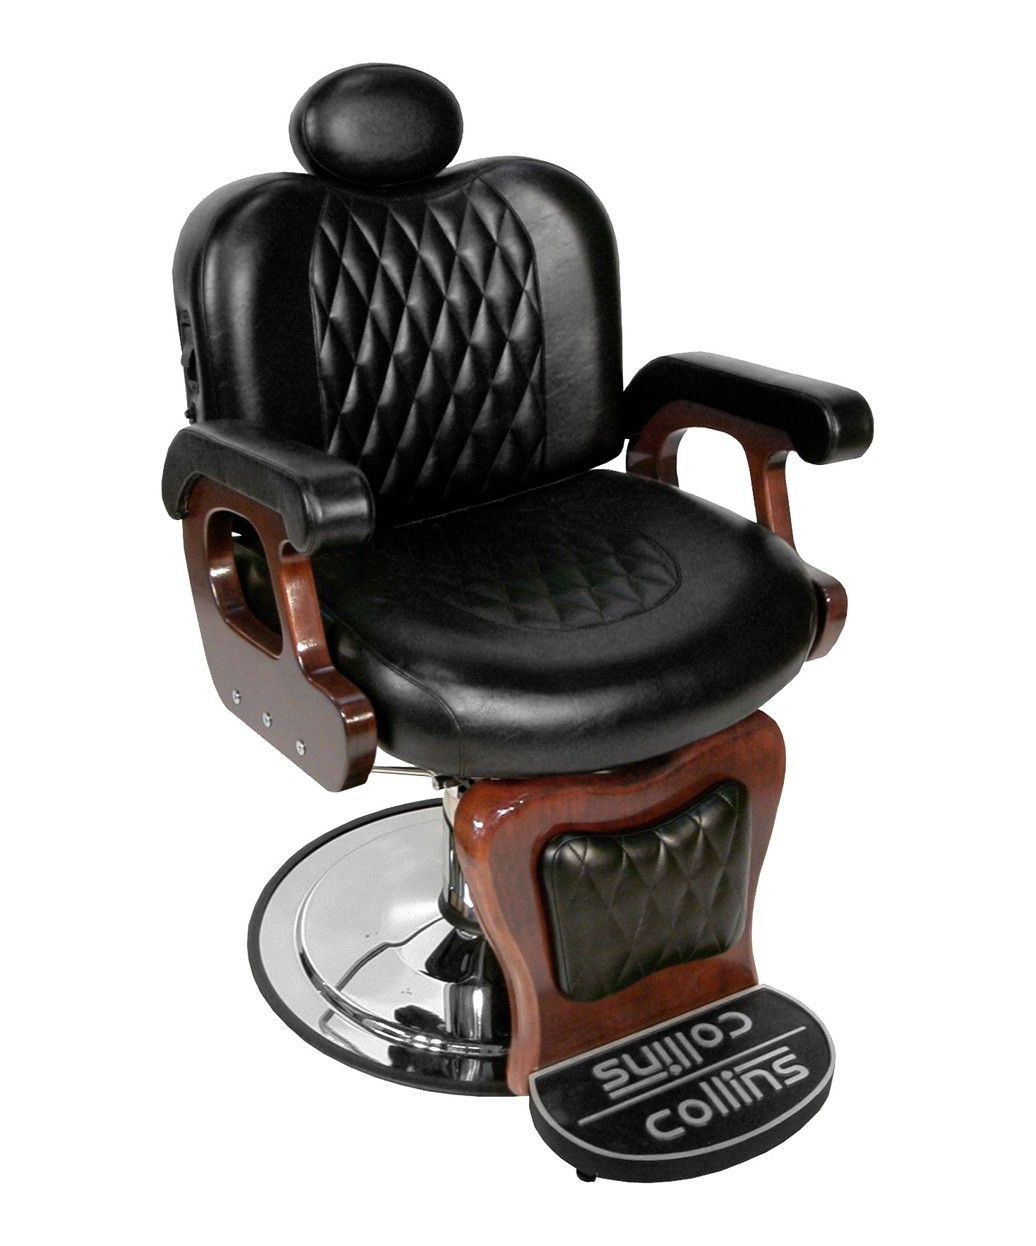 Modern barber chair - Classic Traditional Modern Barber Chairs For Sale By Keller International Durable Bases Easy Reclines At Wholesale Prices Collins Pibbs Equipment